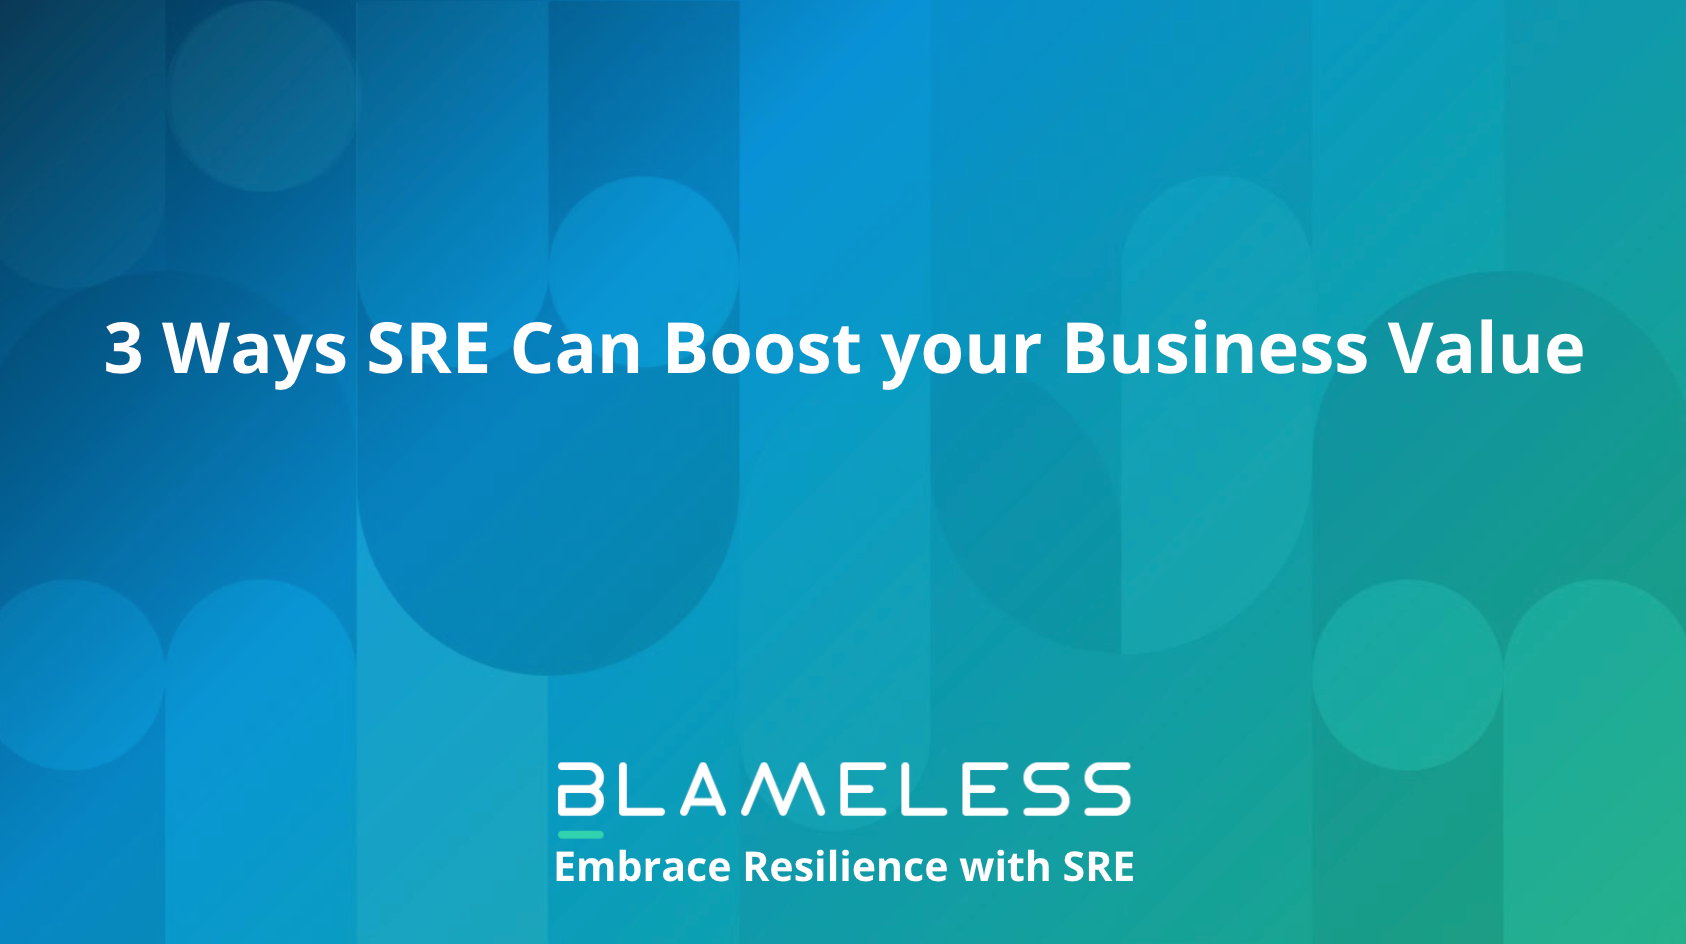 3 Ways SRE Can Boost your Business Value